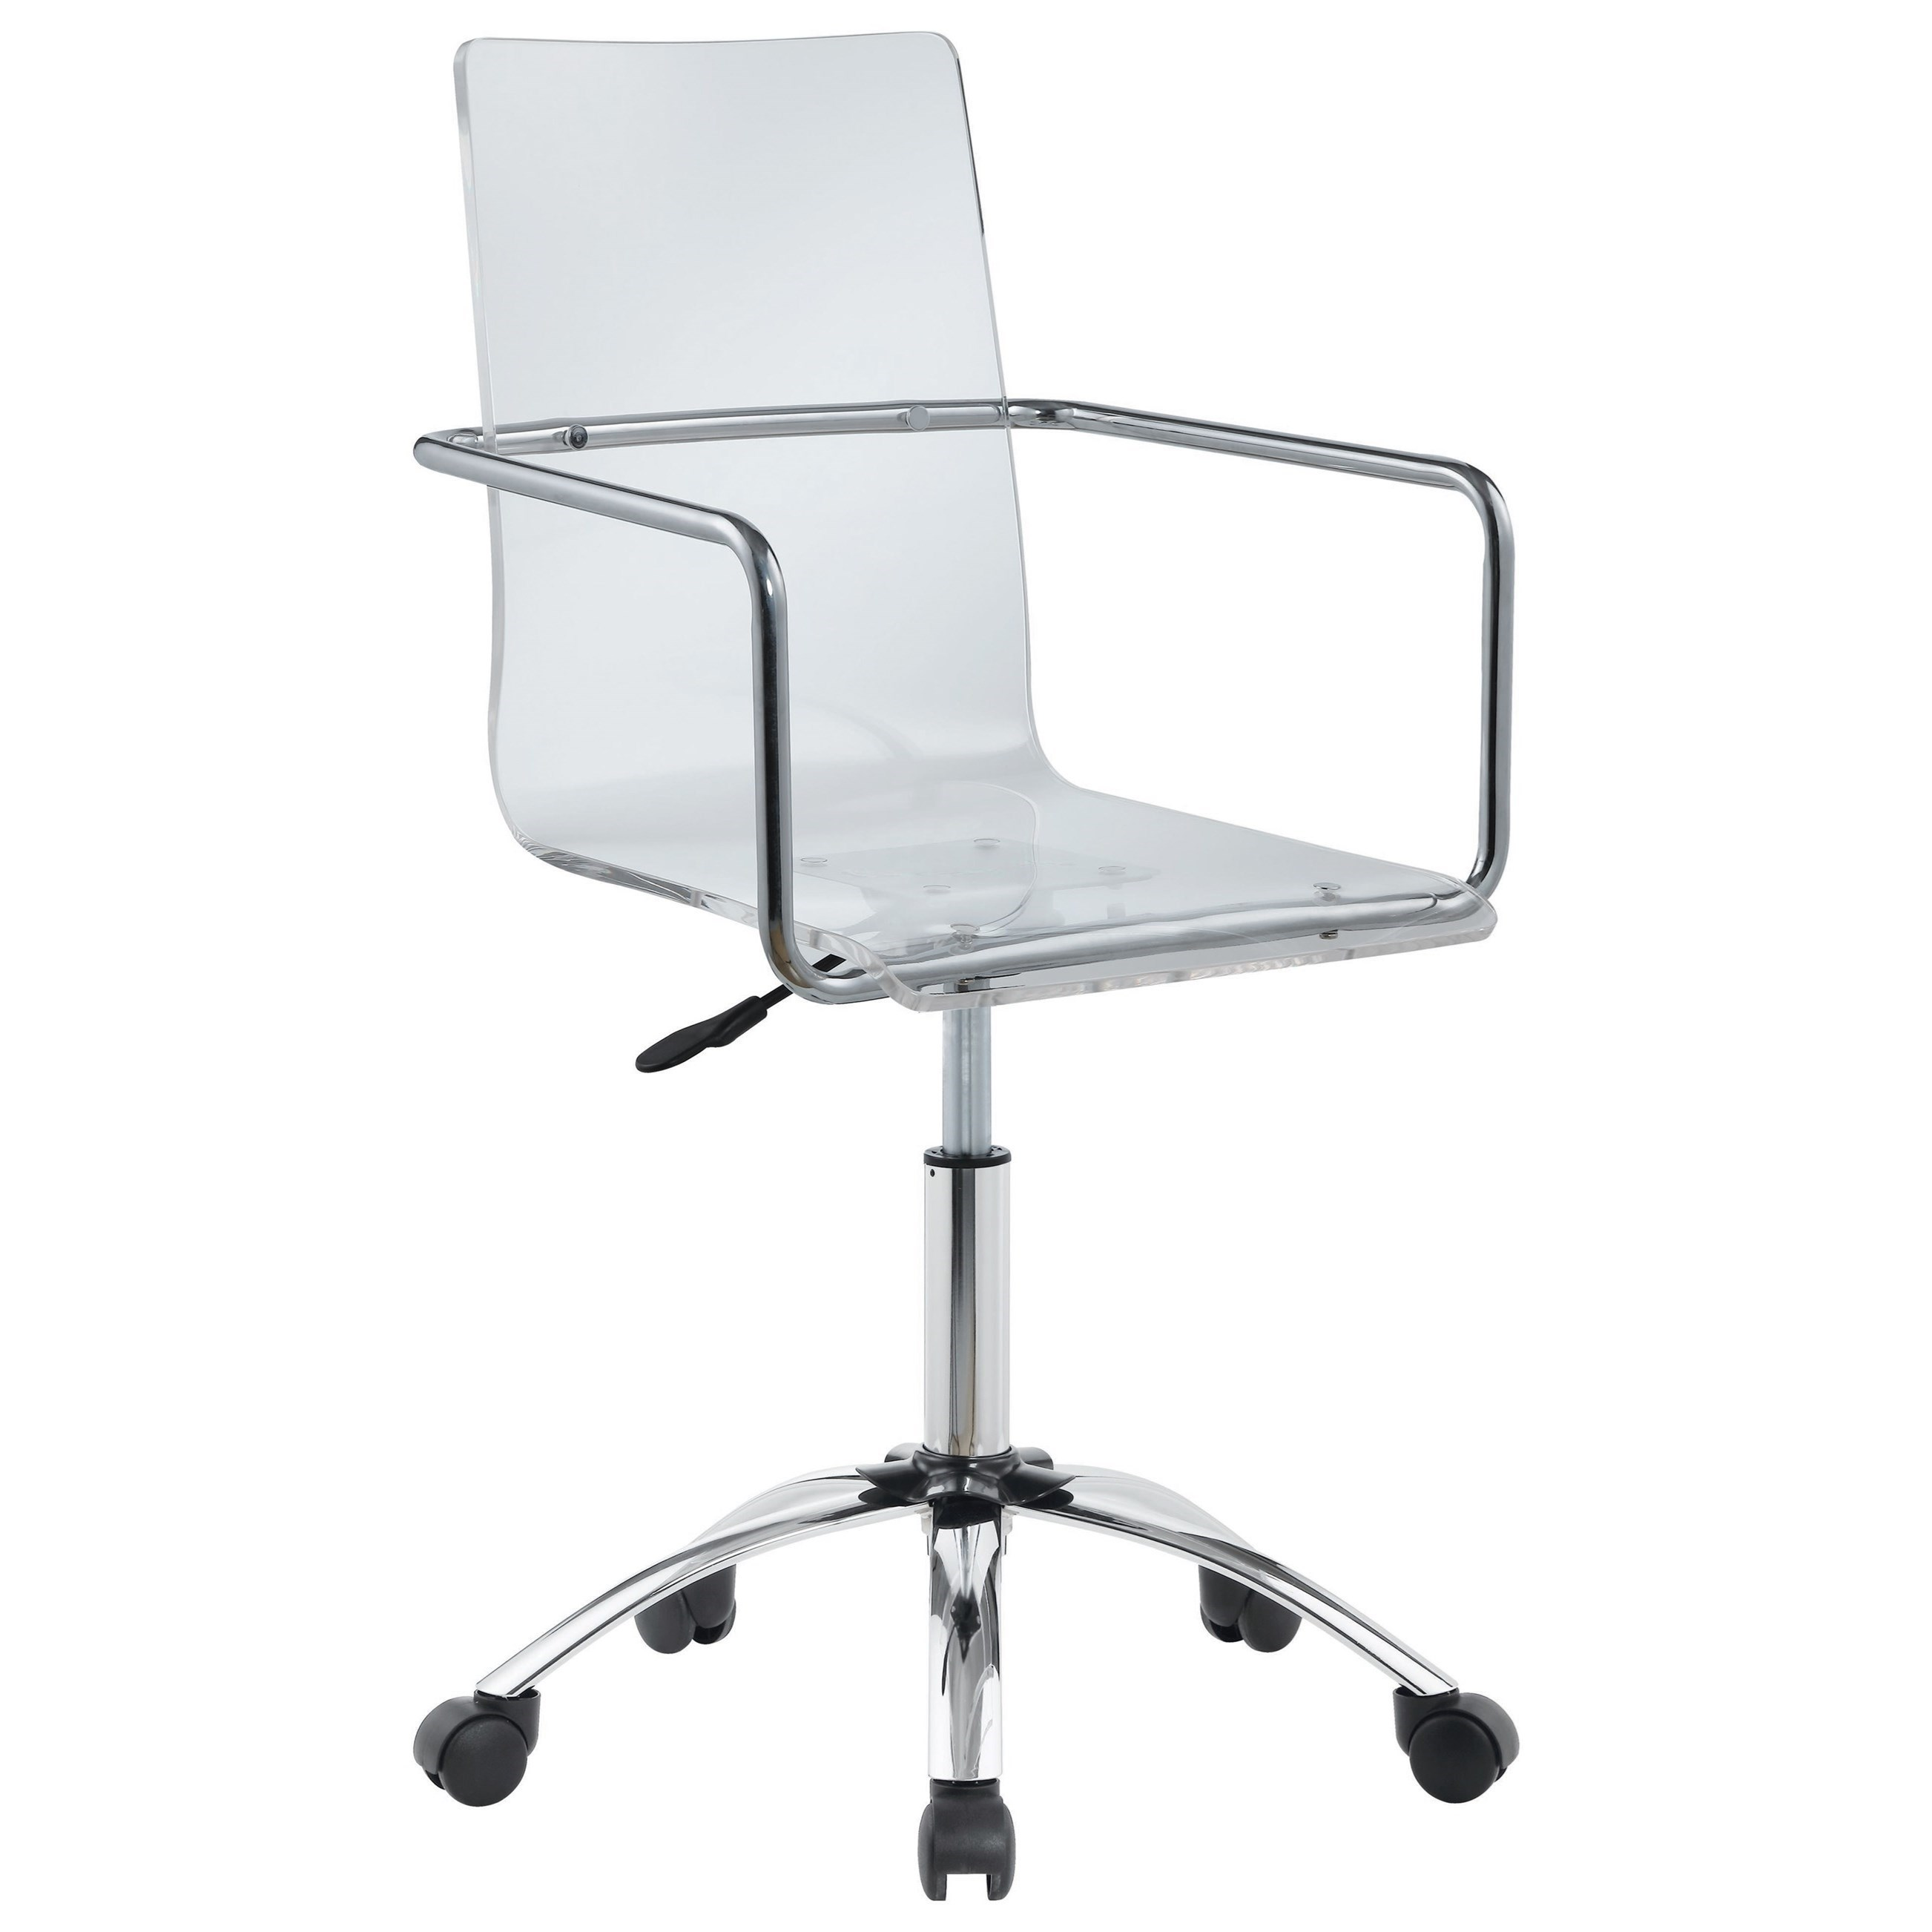 acrylic office chairs. Coaster Office ChairsOffice Chair Acrylic Office Chairs Y